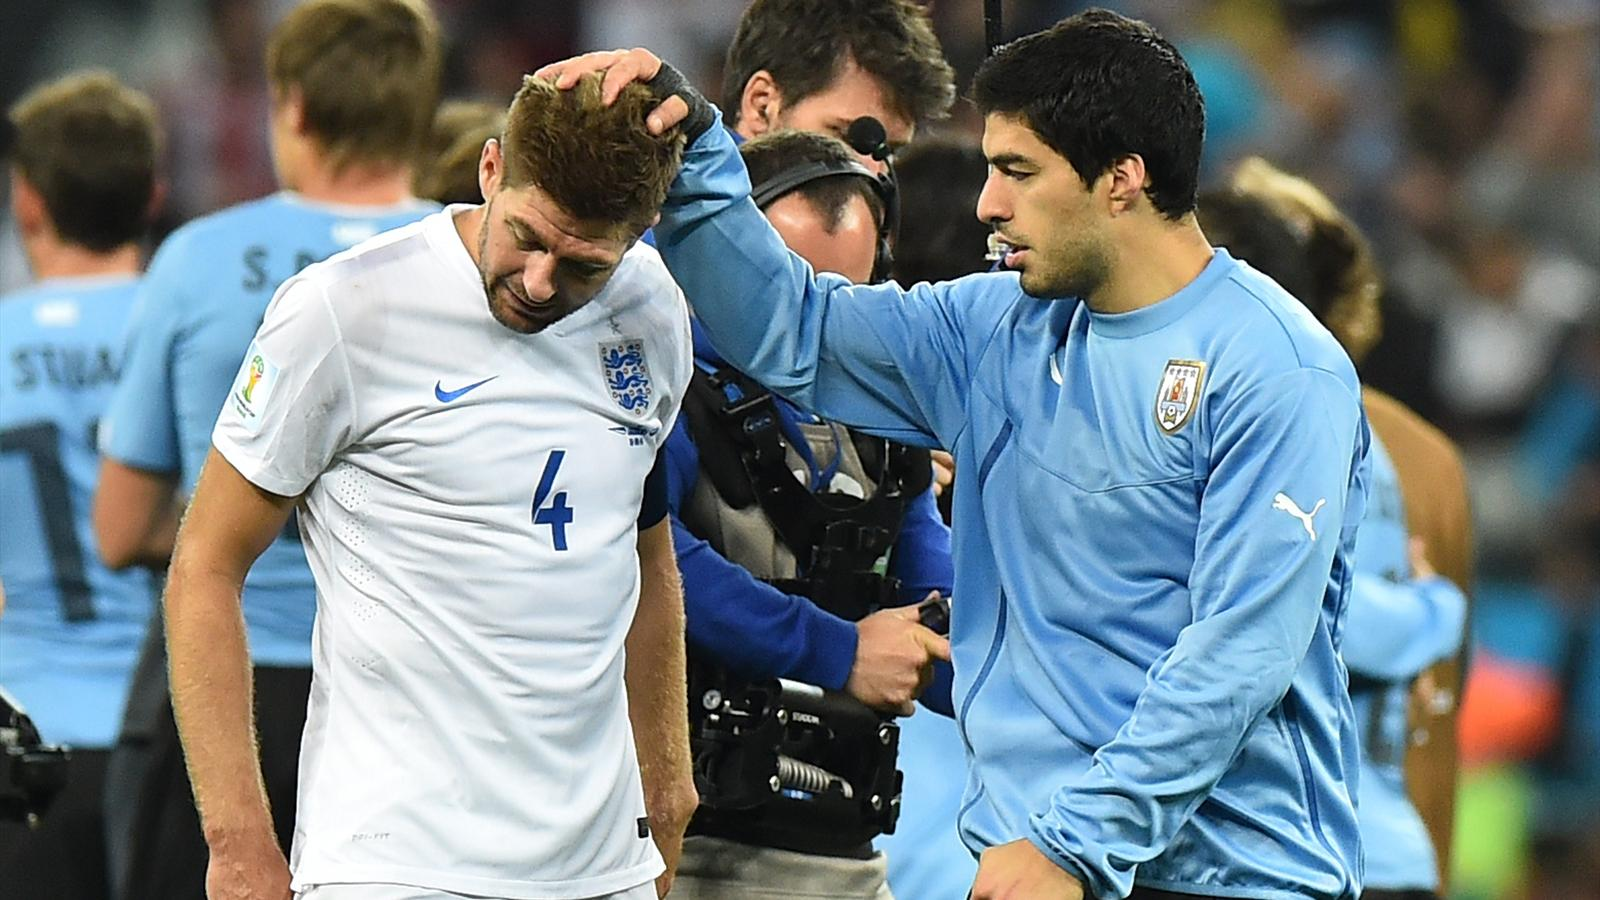 Steven Gerrard and Luis Suarez after Uruguay - England, World Cup 2014